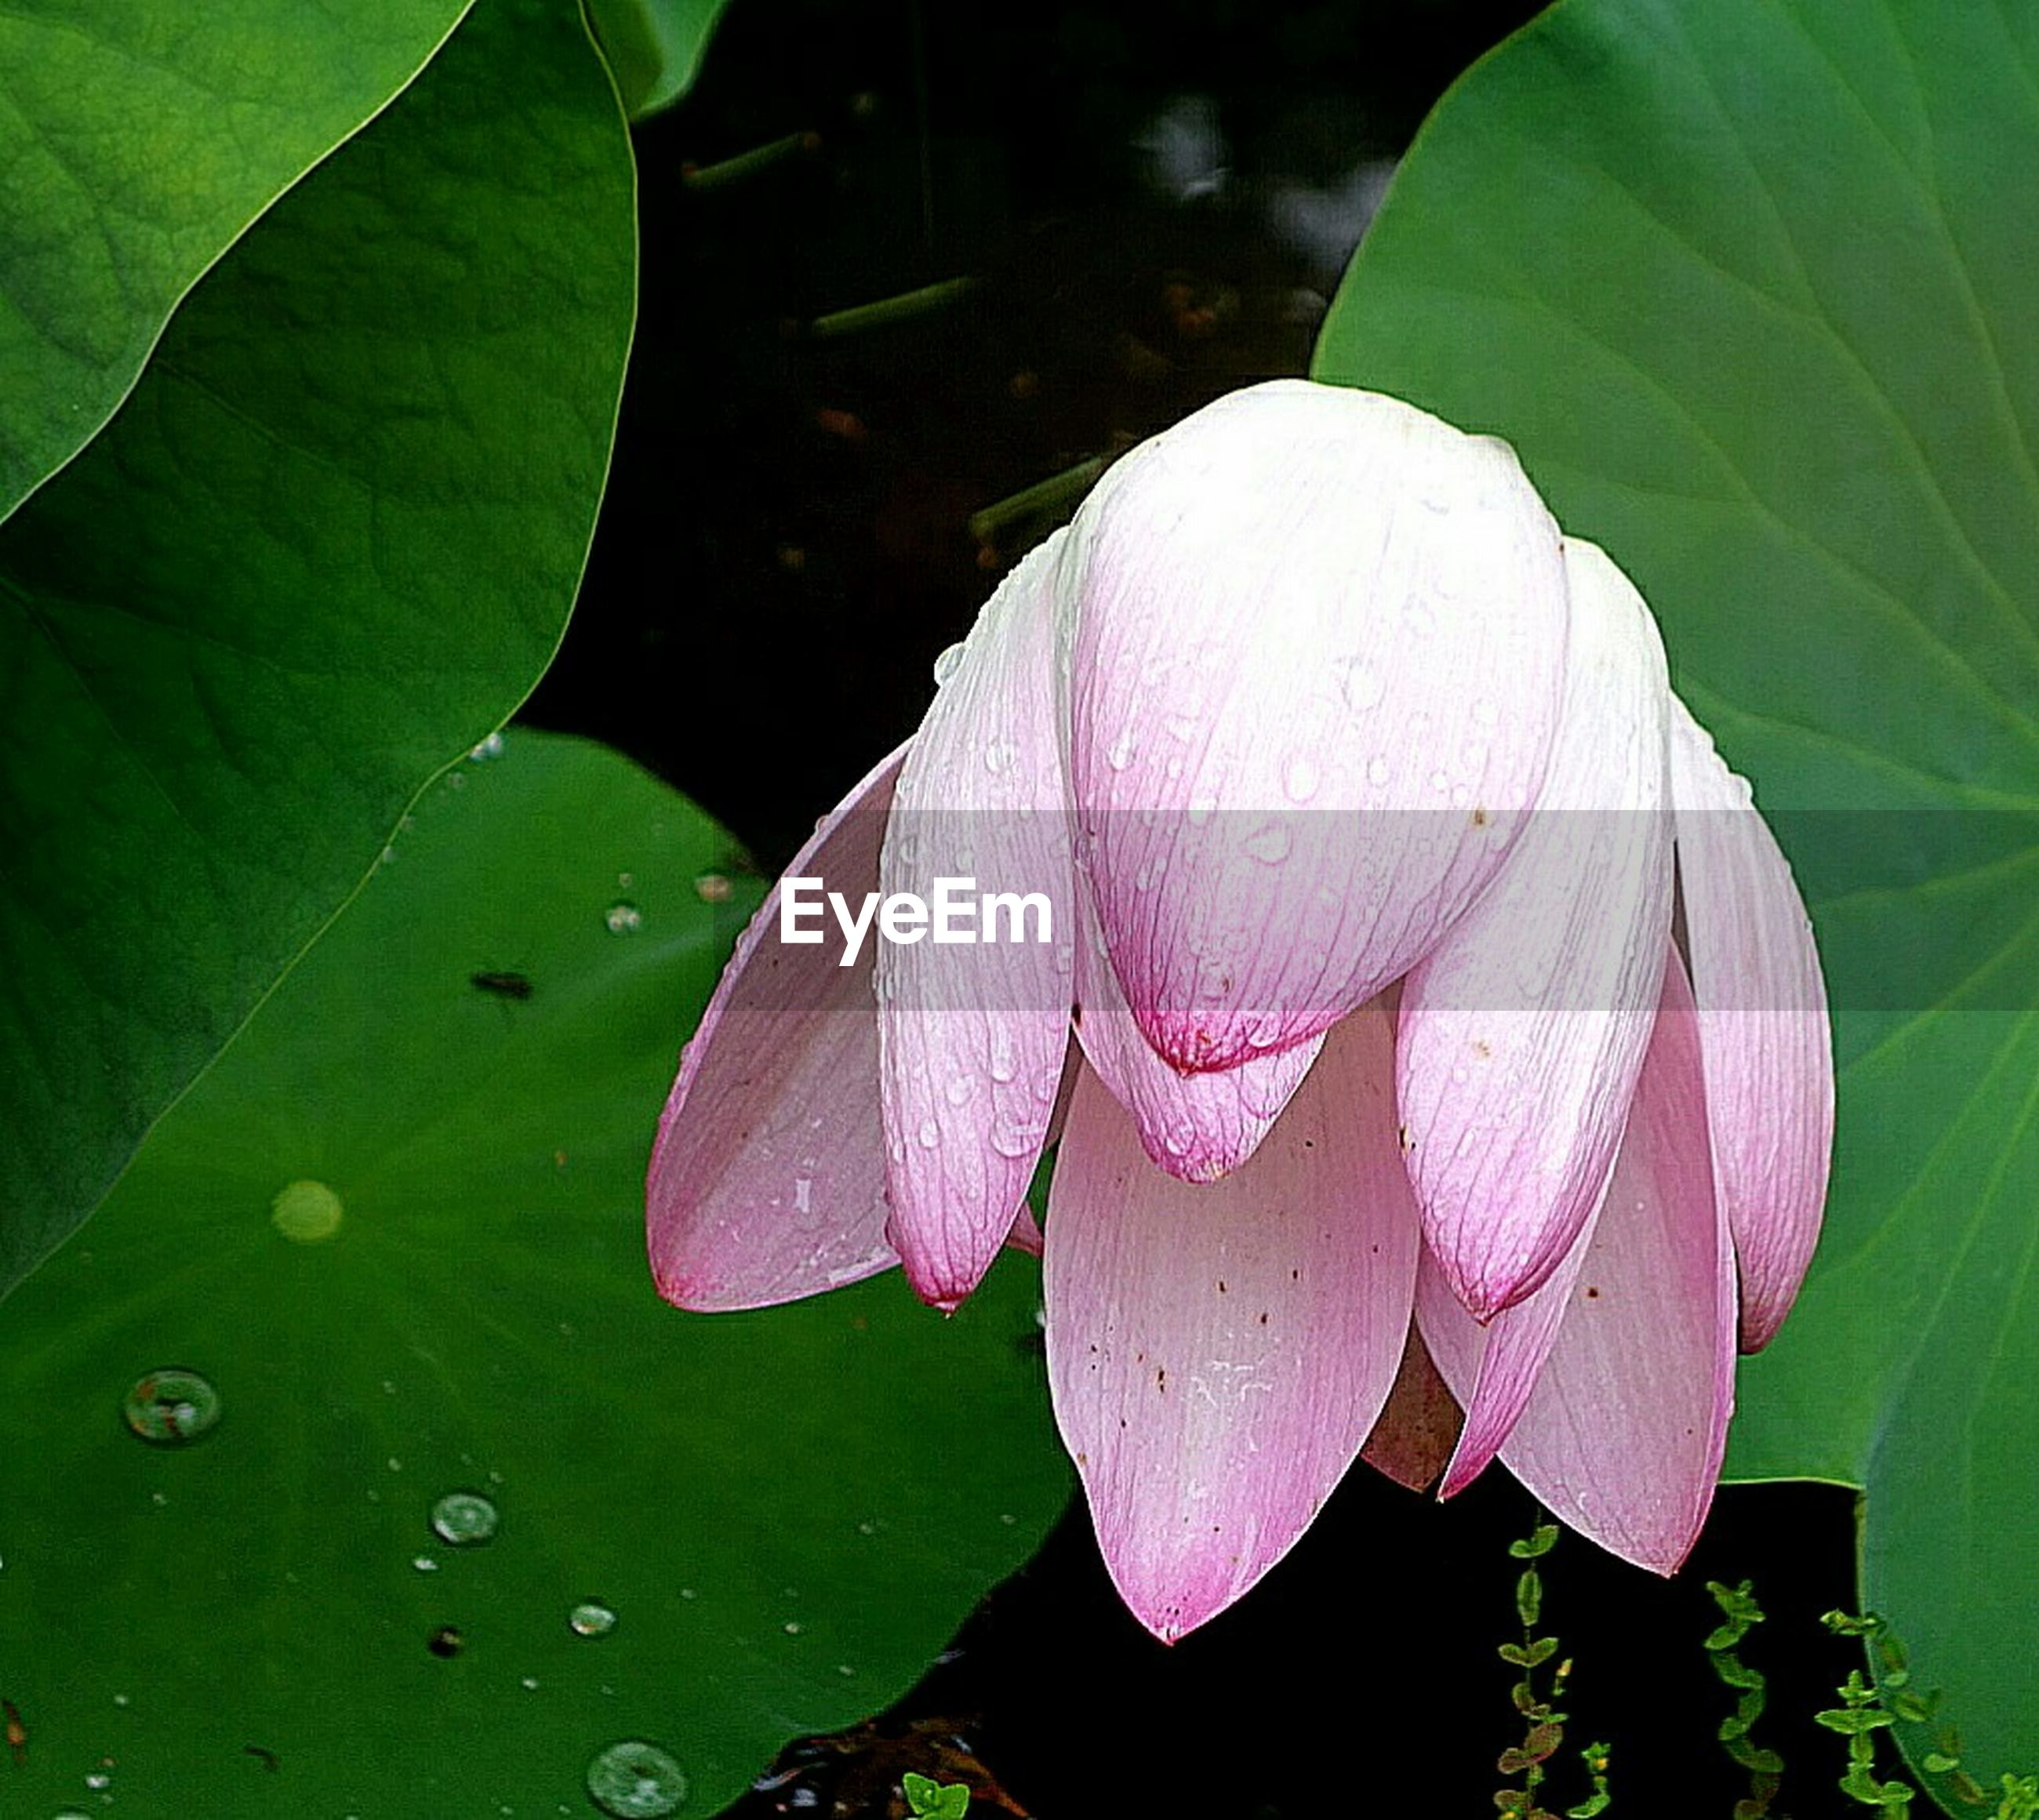 leaf, flower, fragility, petal, growth, freshness, beauty in nature, close-up, nature, flower head, plant, pink color, single flower, green color, high angle view, leaf vein, water lily, blooming, natural pattern, outdoors